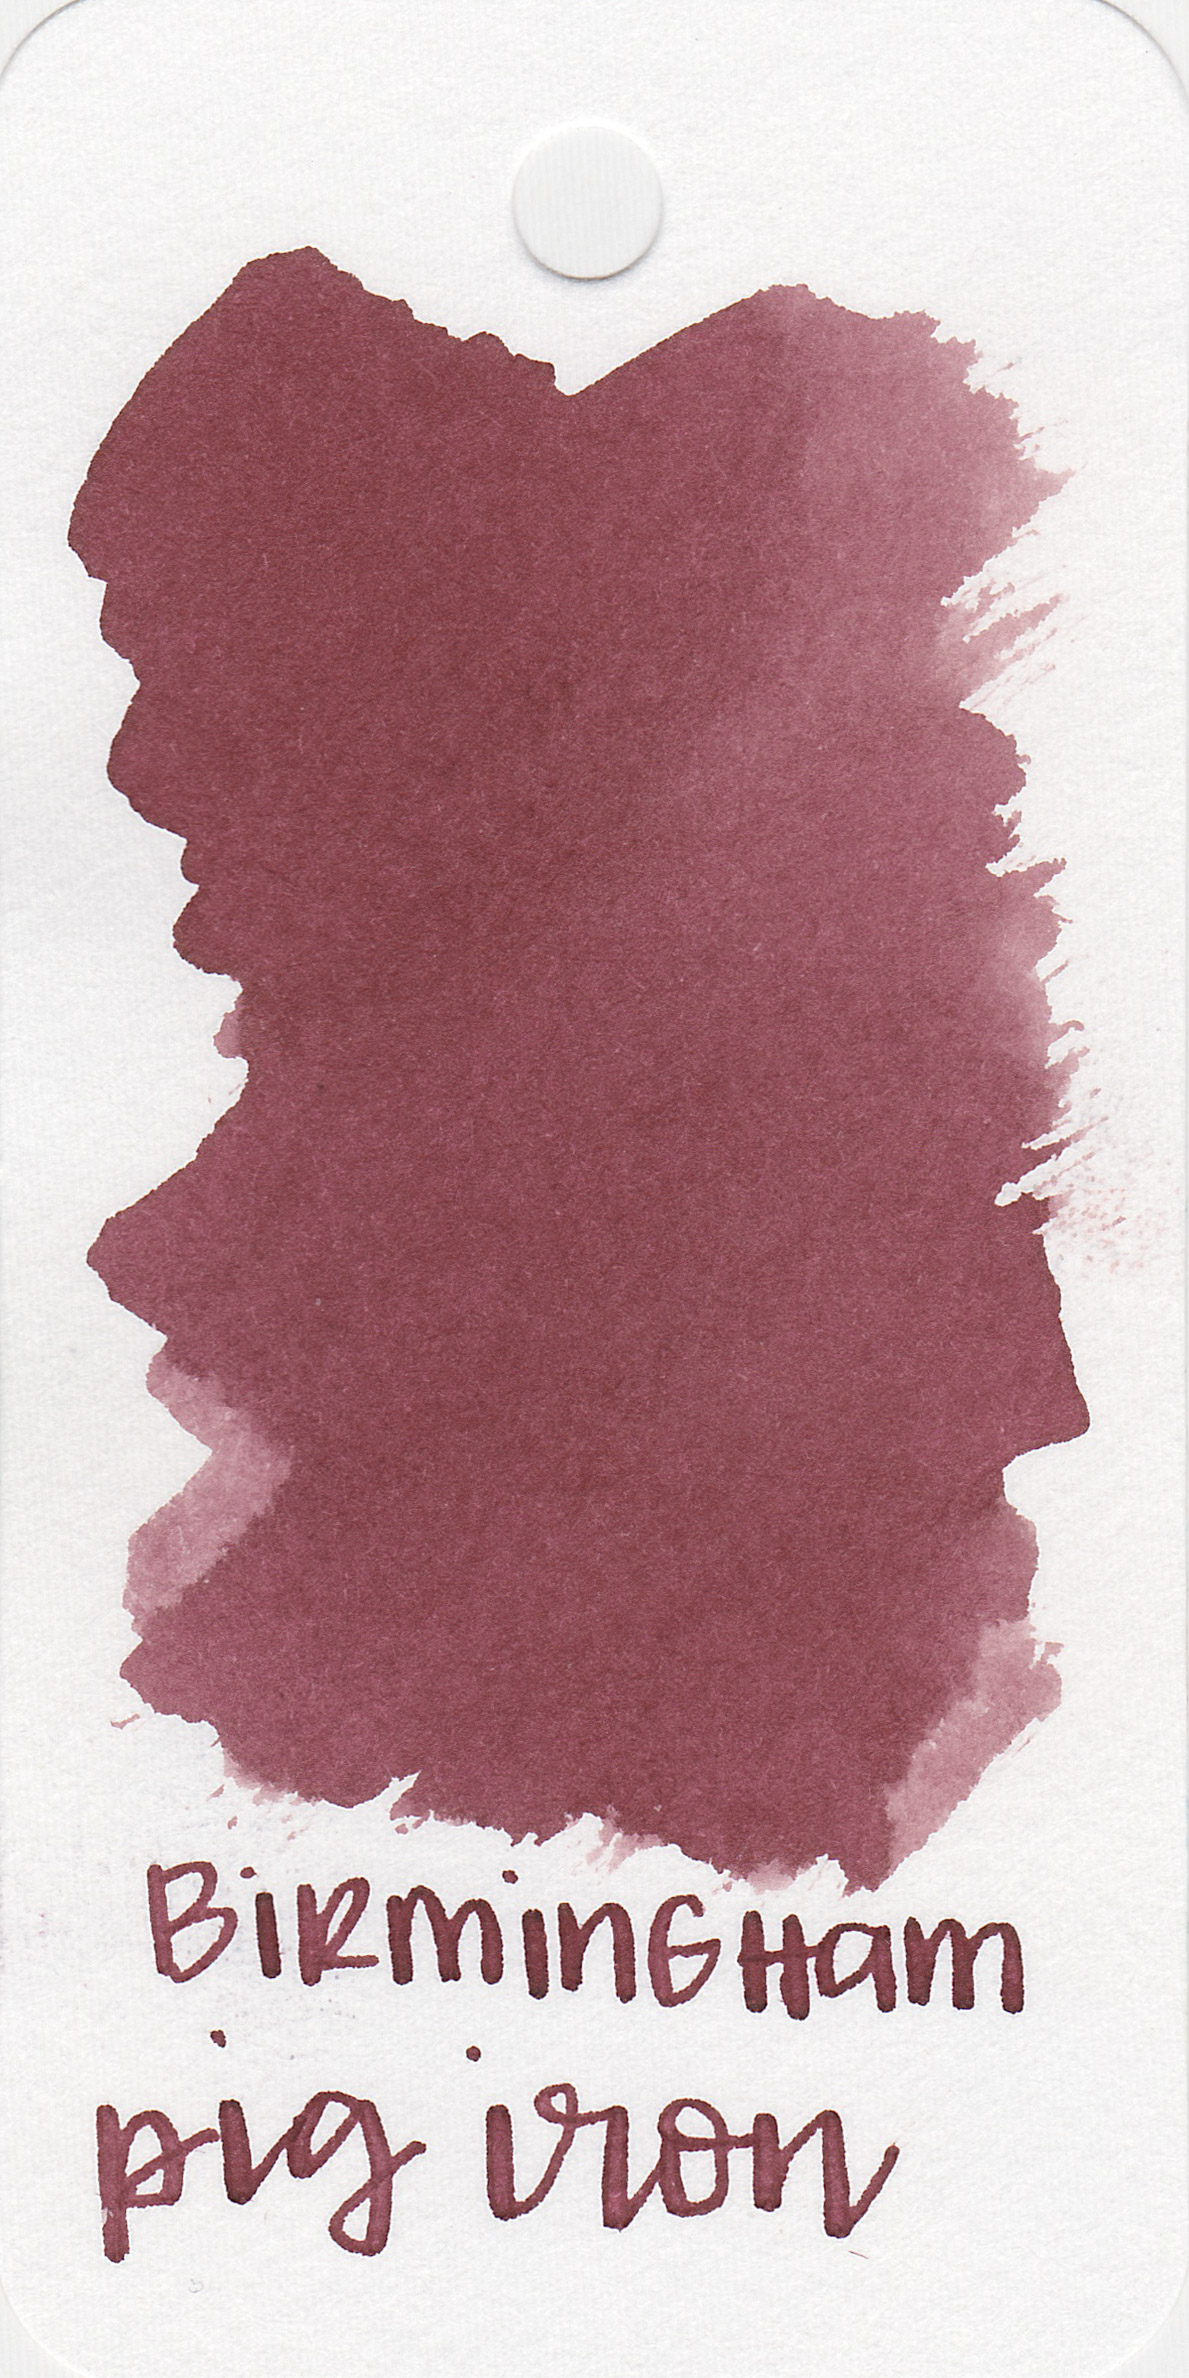 The color: - Pig Iron is a dark, unsaturated red. It's almost a brown but not quite.